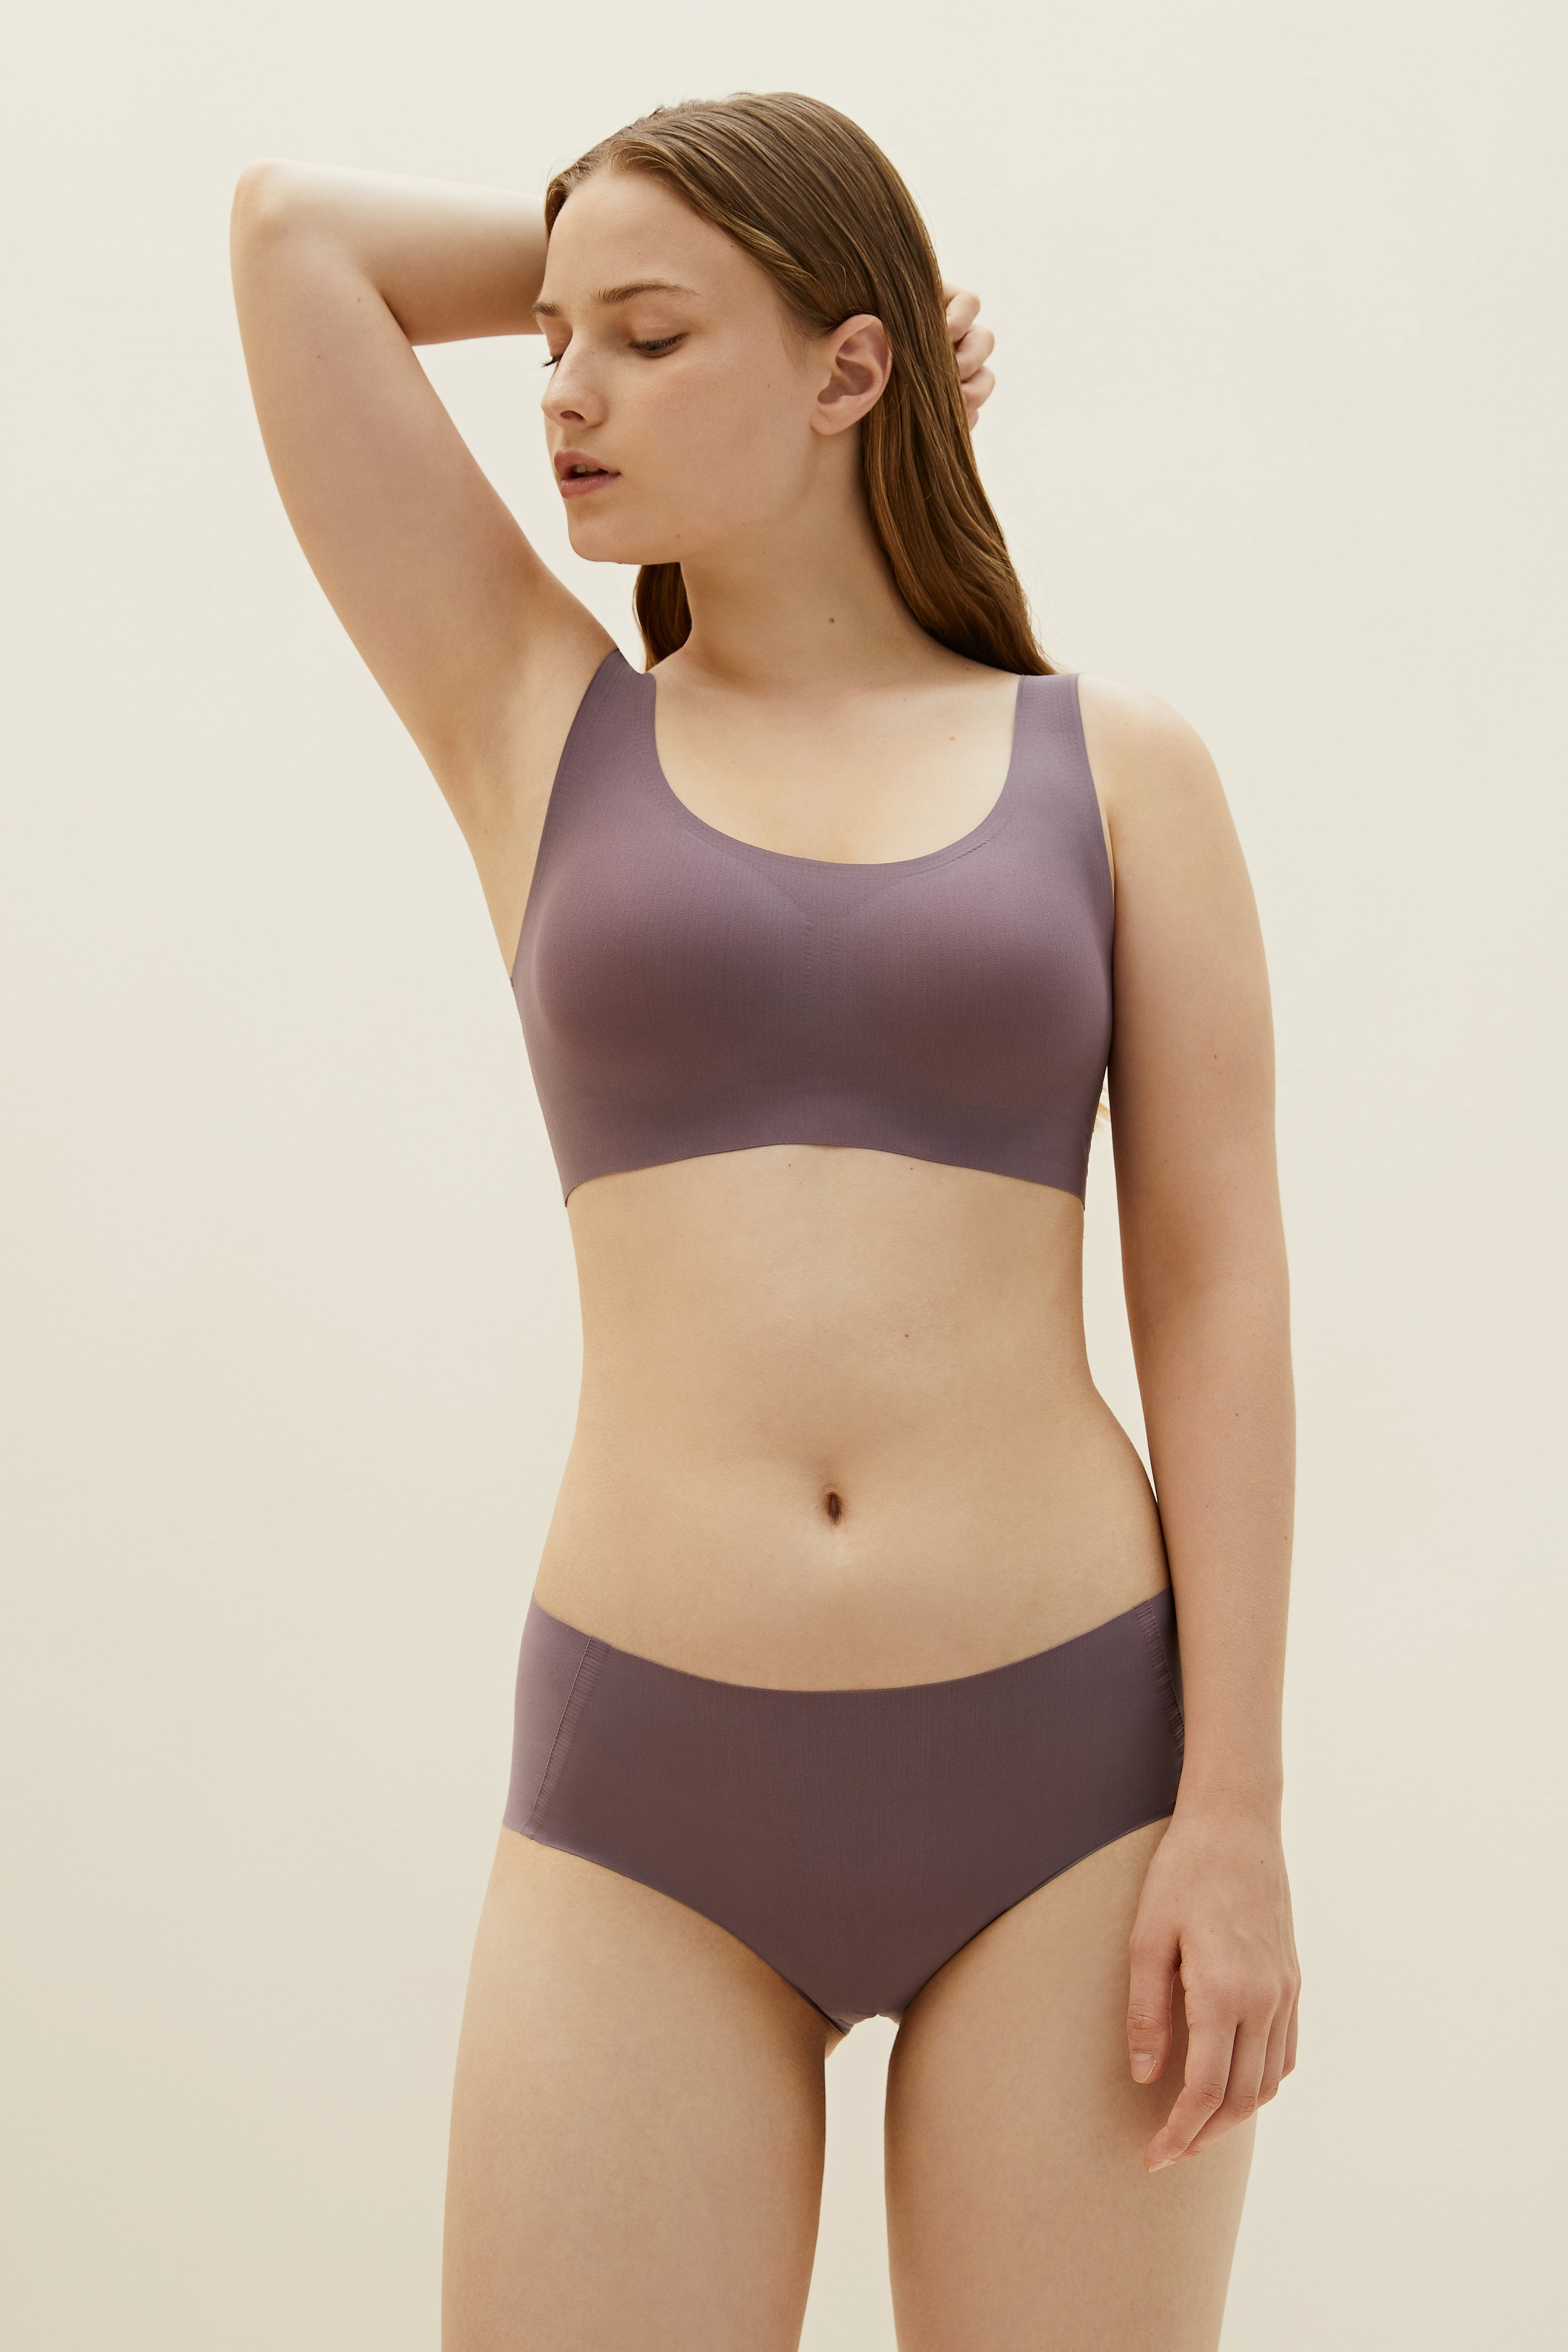 Model wearing NEIWAI's Barely Zero bra and brief set in purple dove.